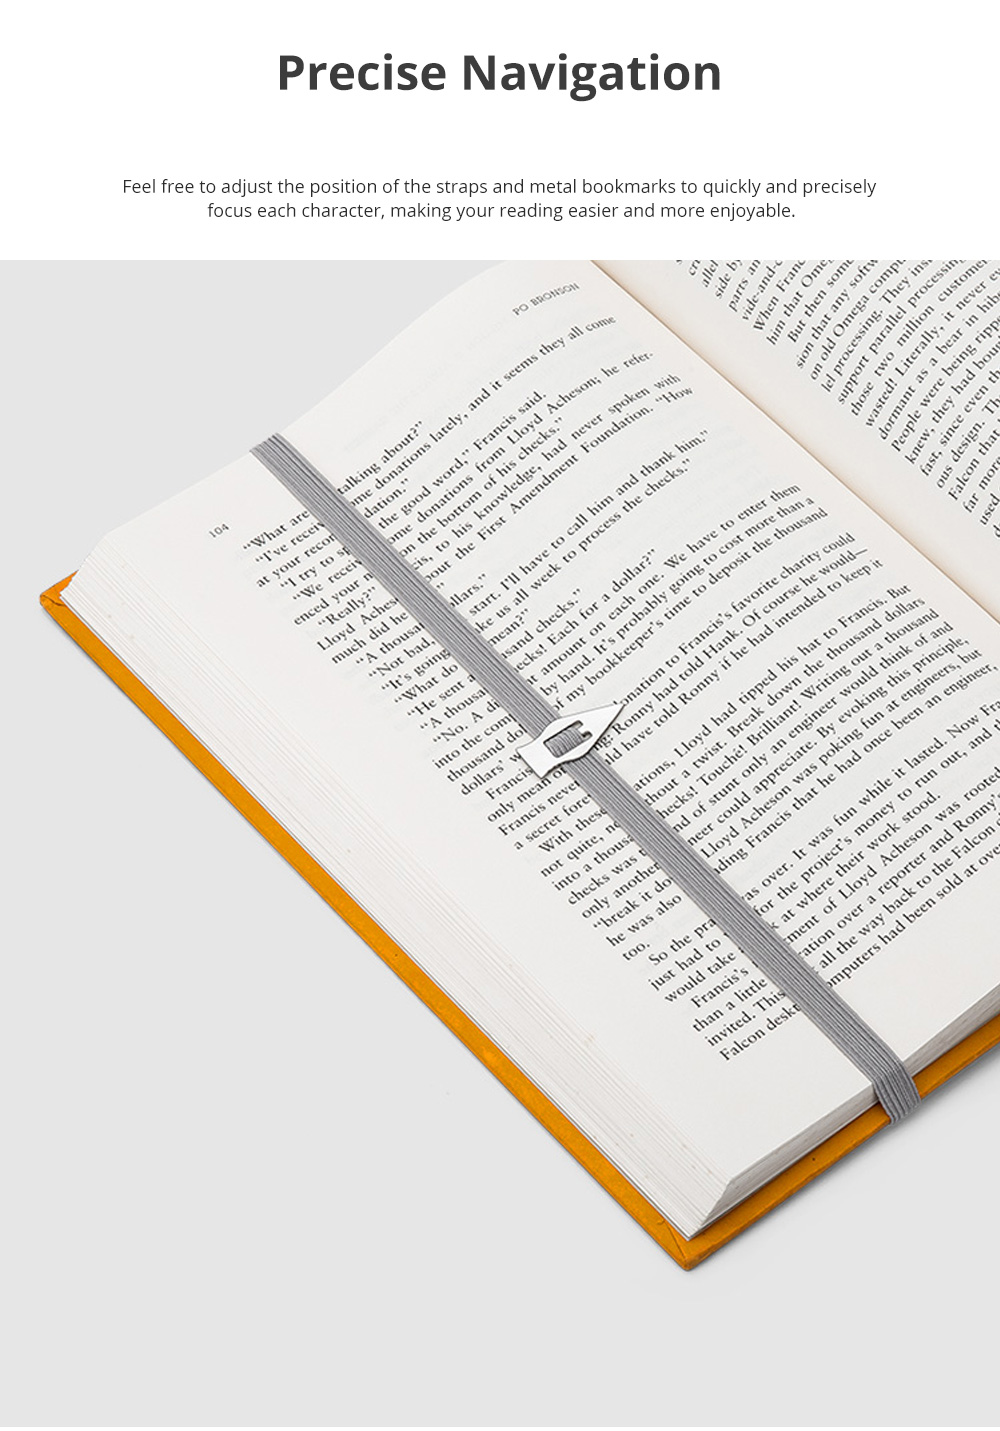 Reusable Arrow Bookmark with High Elastic Strap and Precise Navigation for School Supplies Stationery 2pcs 3